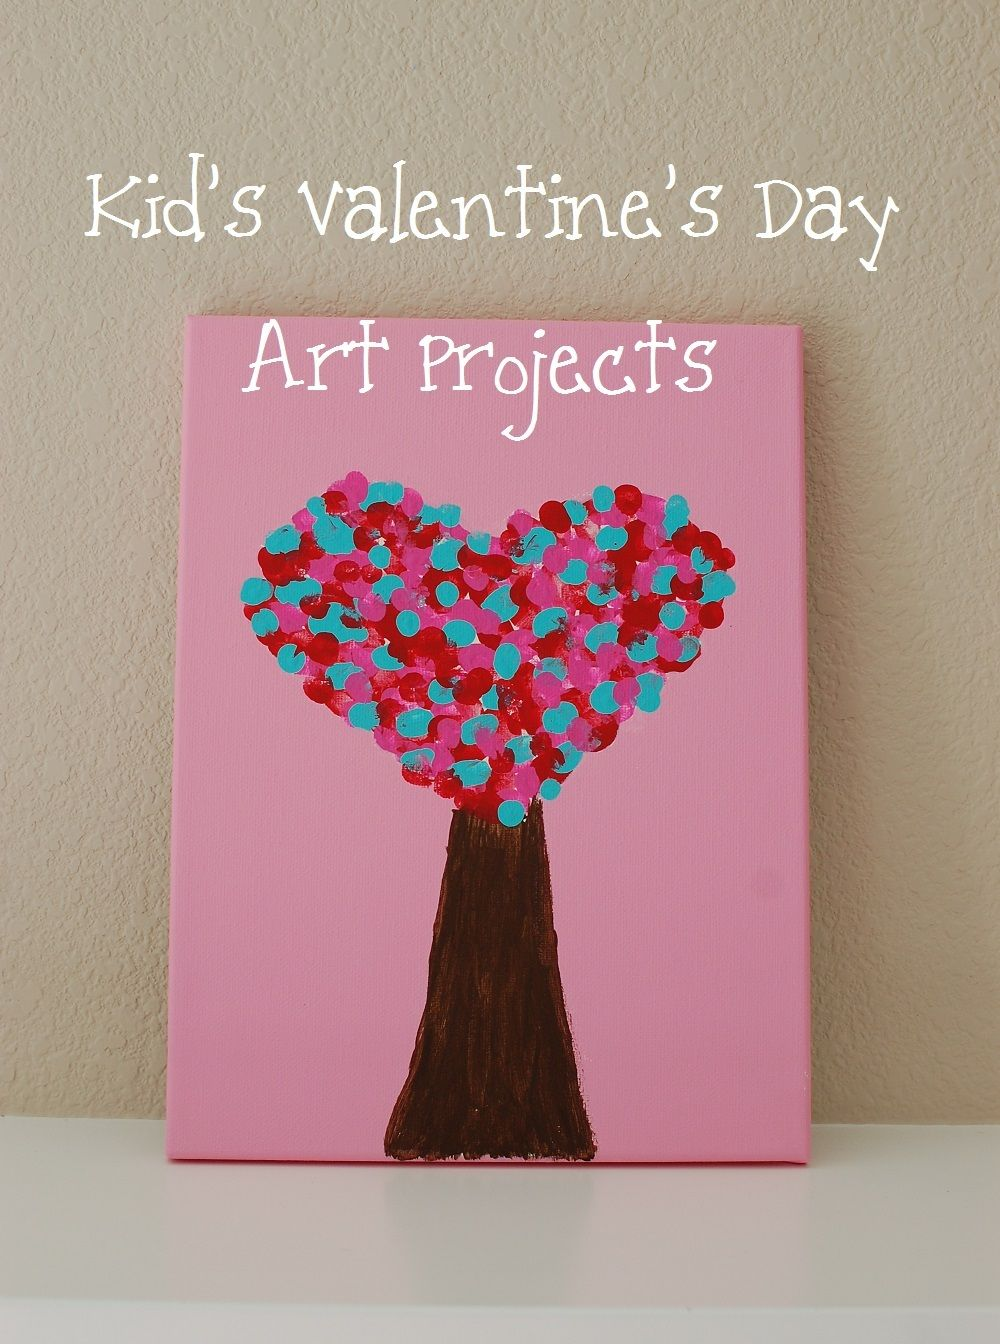 Marvelous Valentine Kid Craft Ideas Part - 12: Kidu0027s Valentineu0027s Day Art Projects.. I Think I Can Do This With Thumb Prints